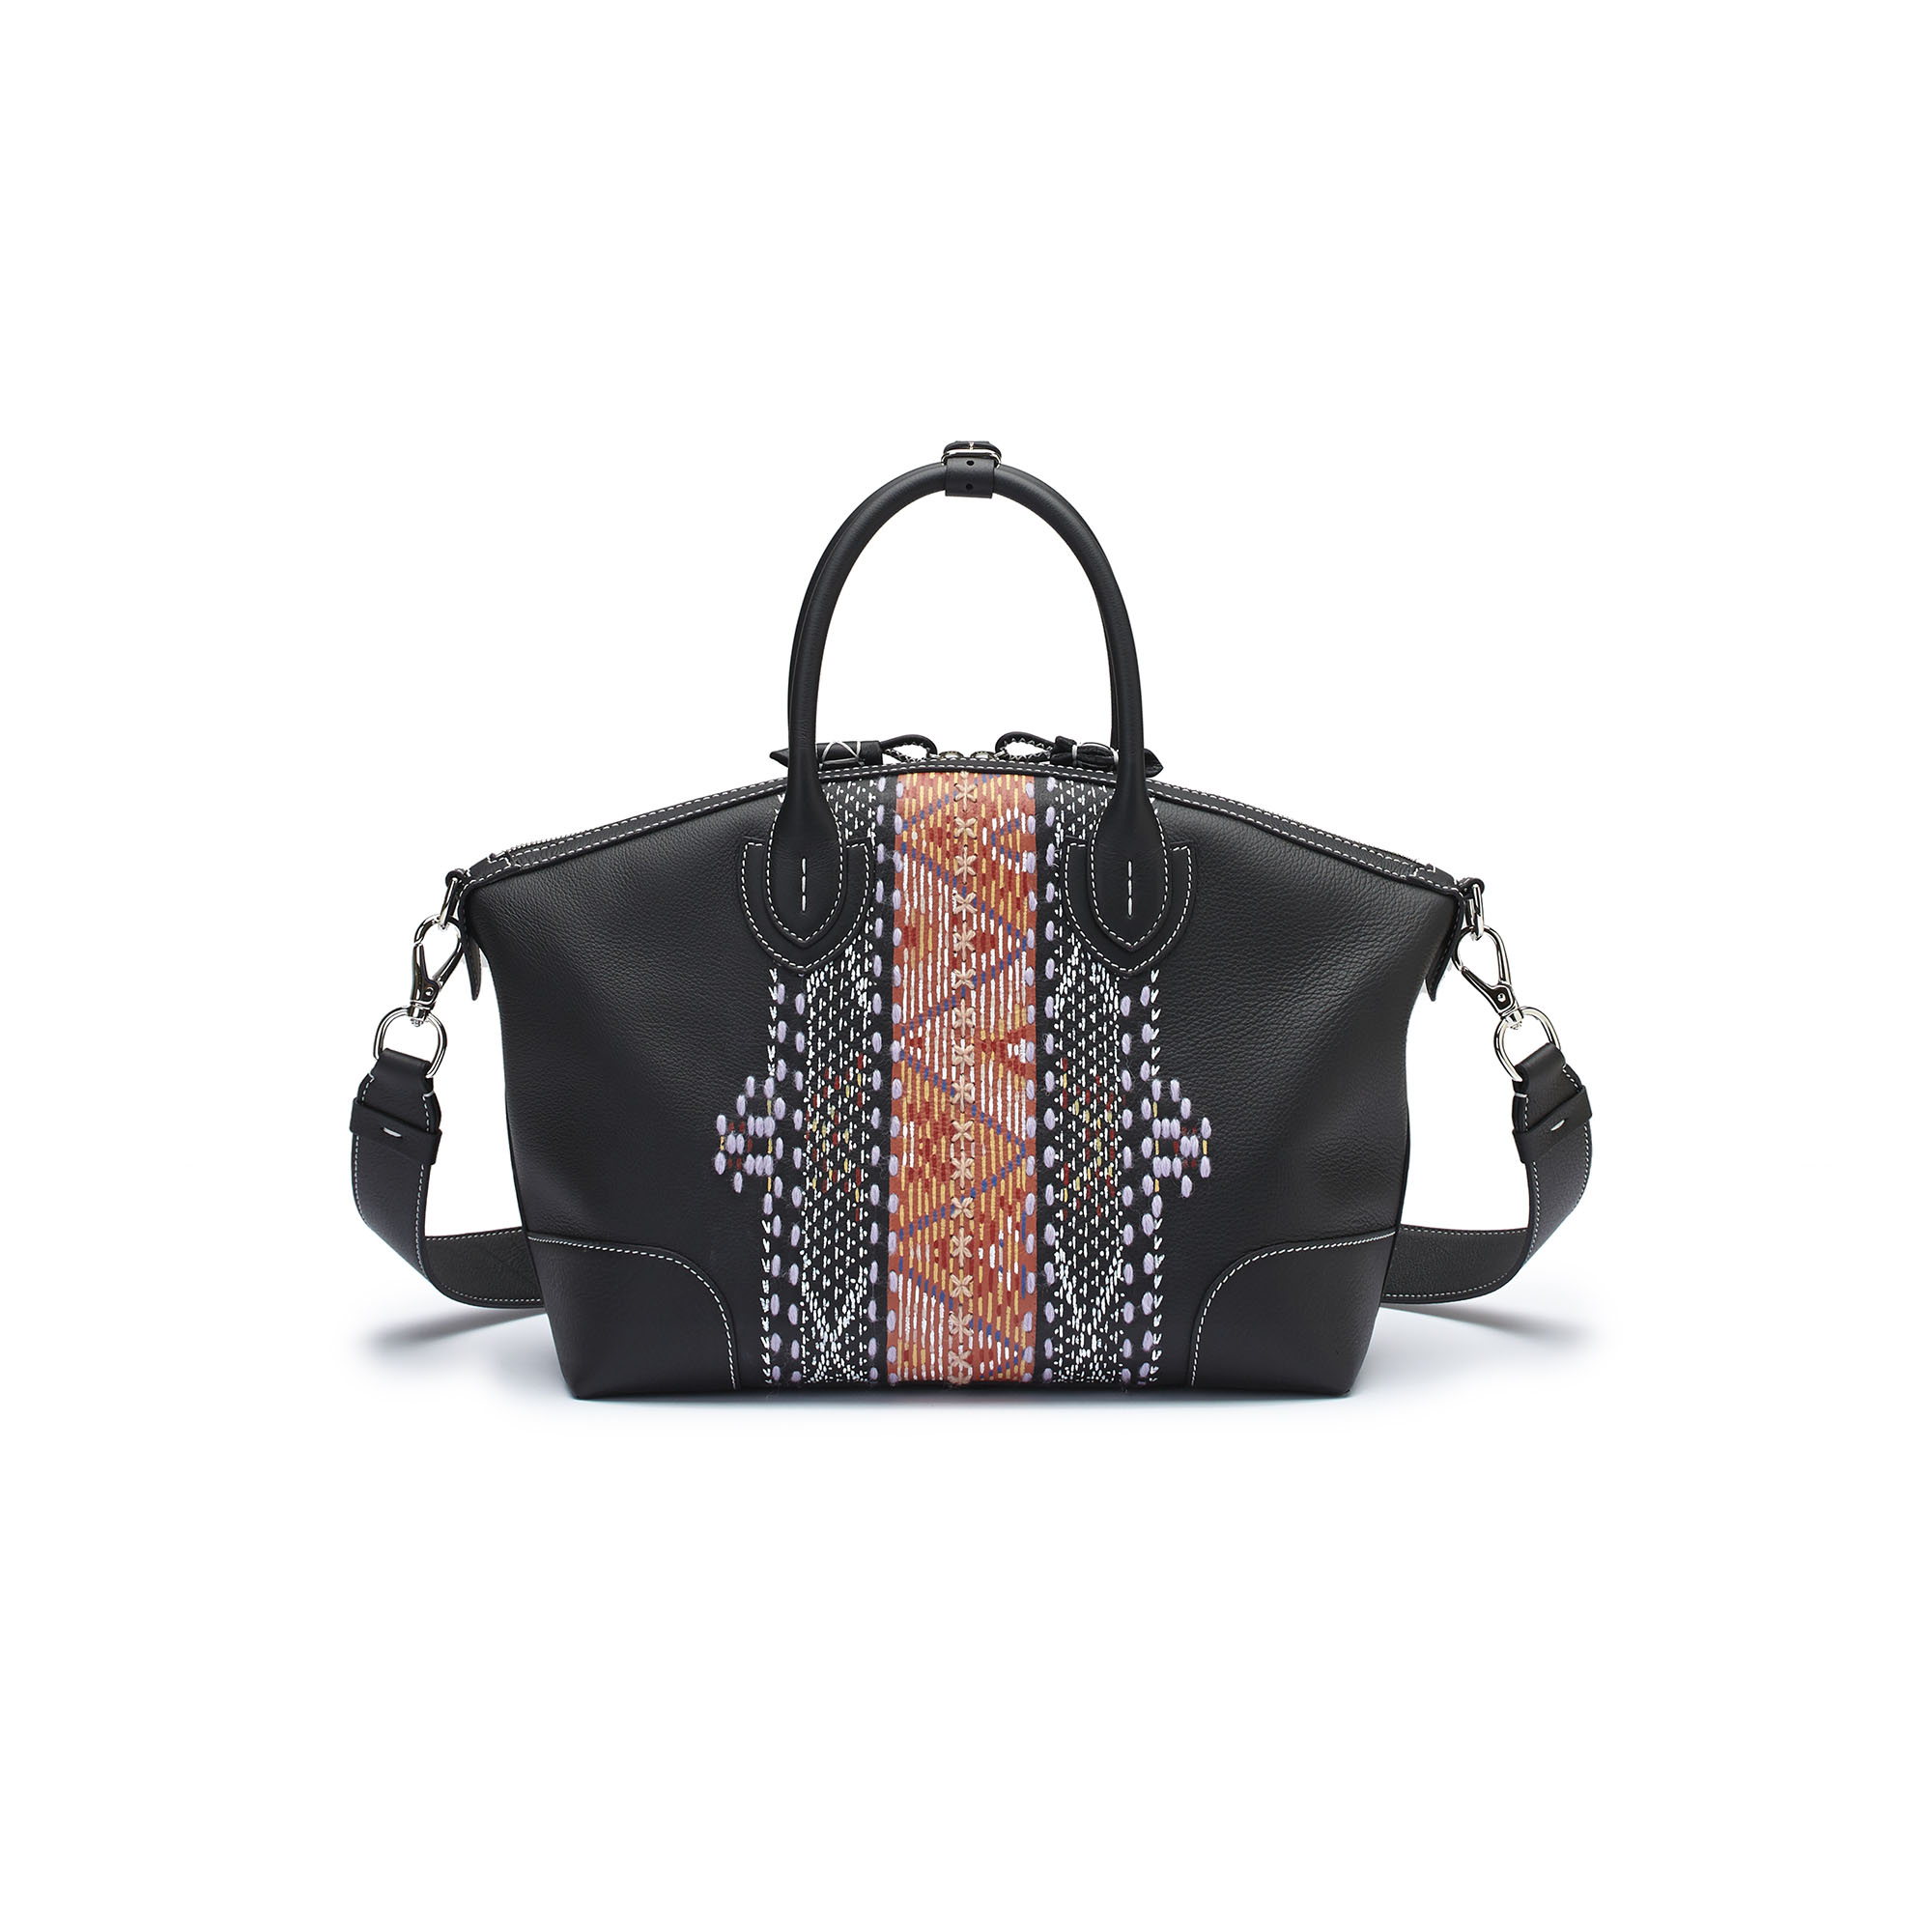 The black embroidered hand painted soft calf Anija bag by Bertoni 1949 03